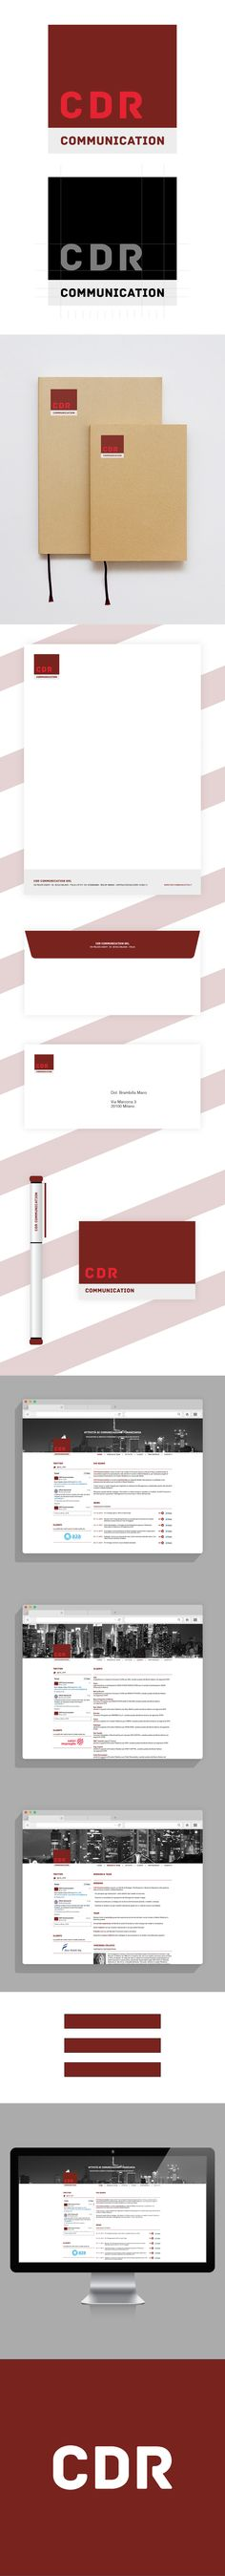 CDR COMMUNICATION - WEB & CORPORATE IDENTITY